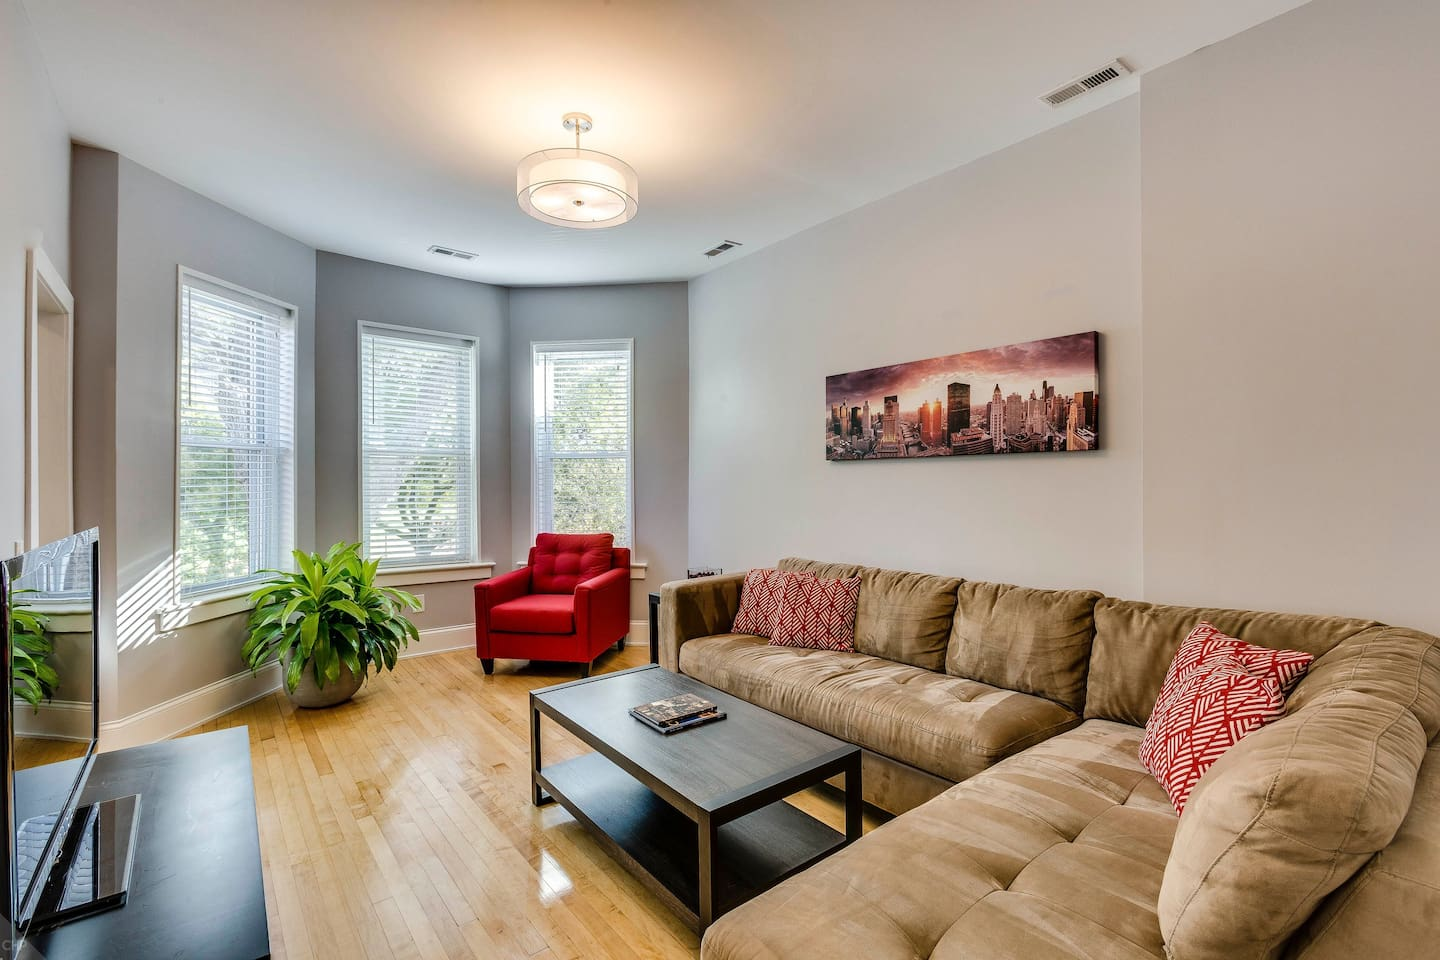 Lounge in your living room with views overlooking the park